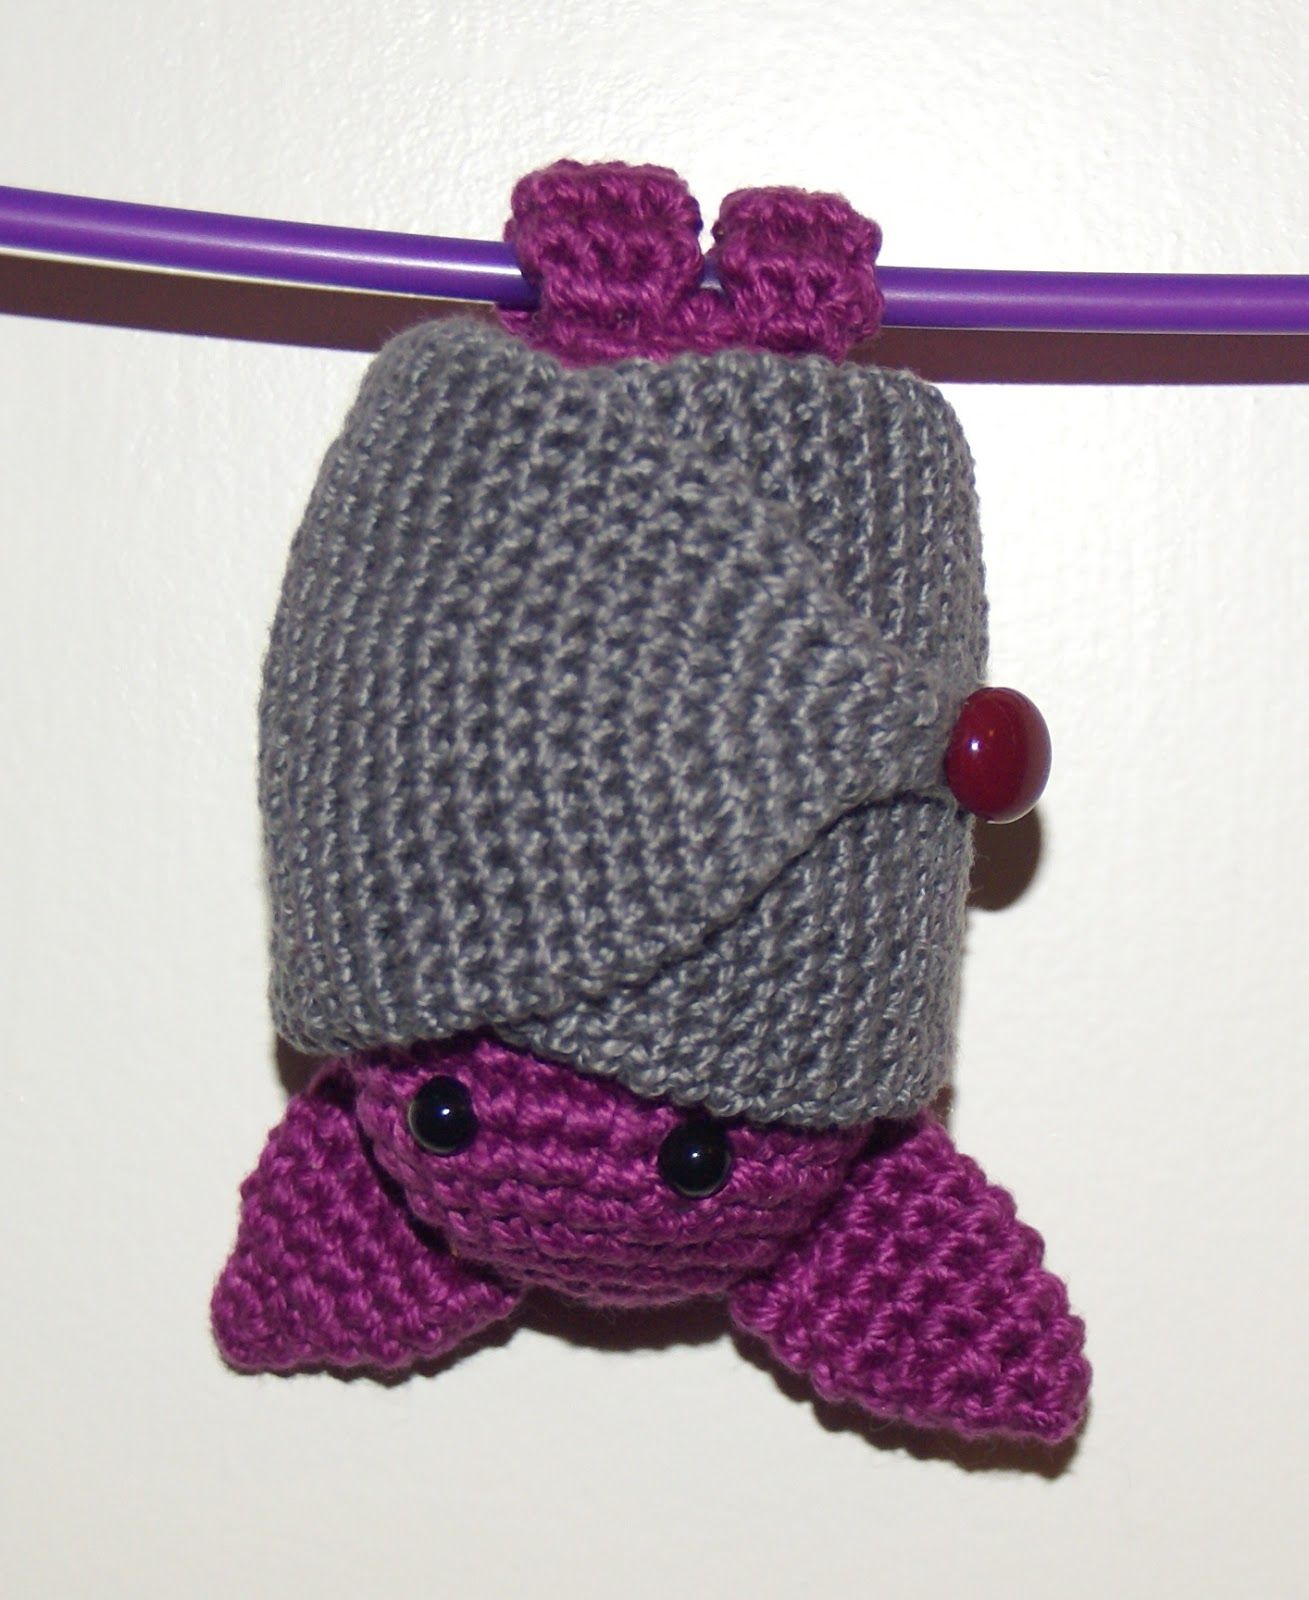 Amigurumi Bat. Pattern in Spanish, but with google